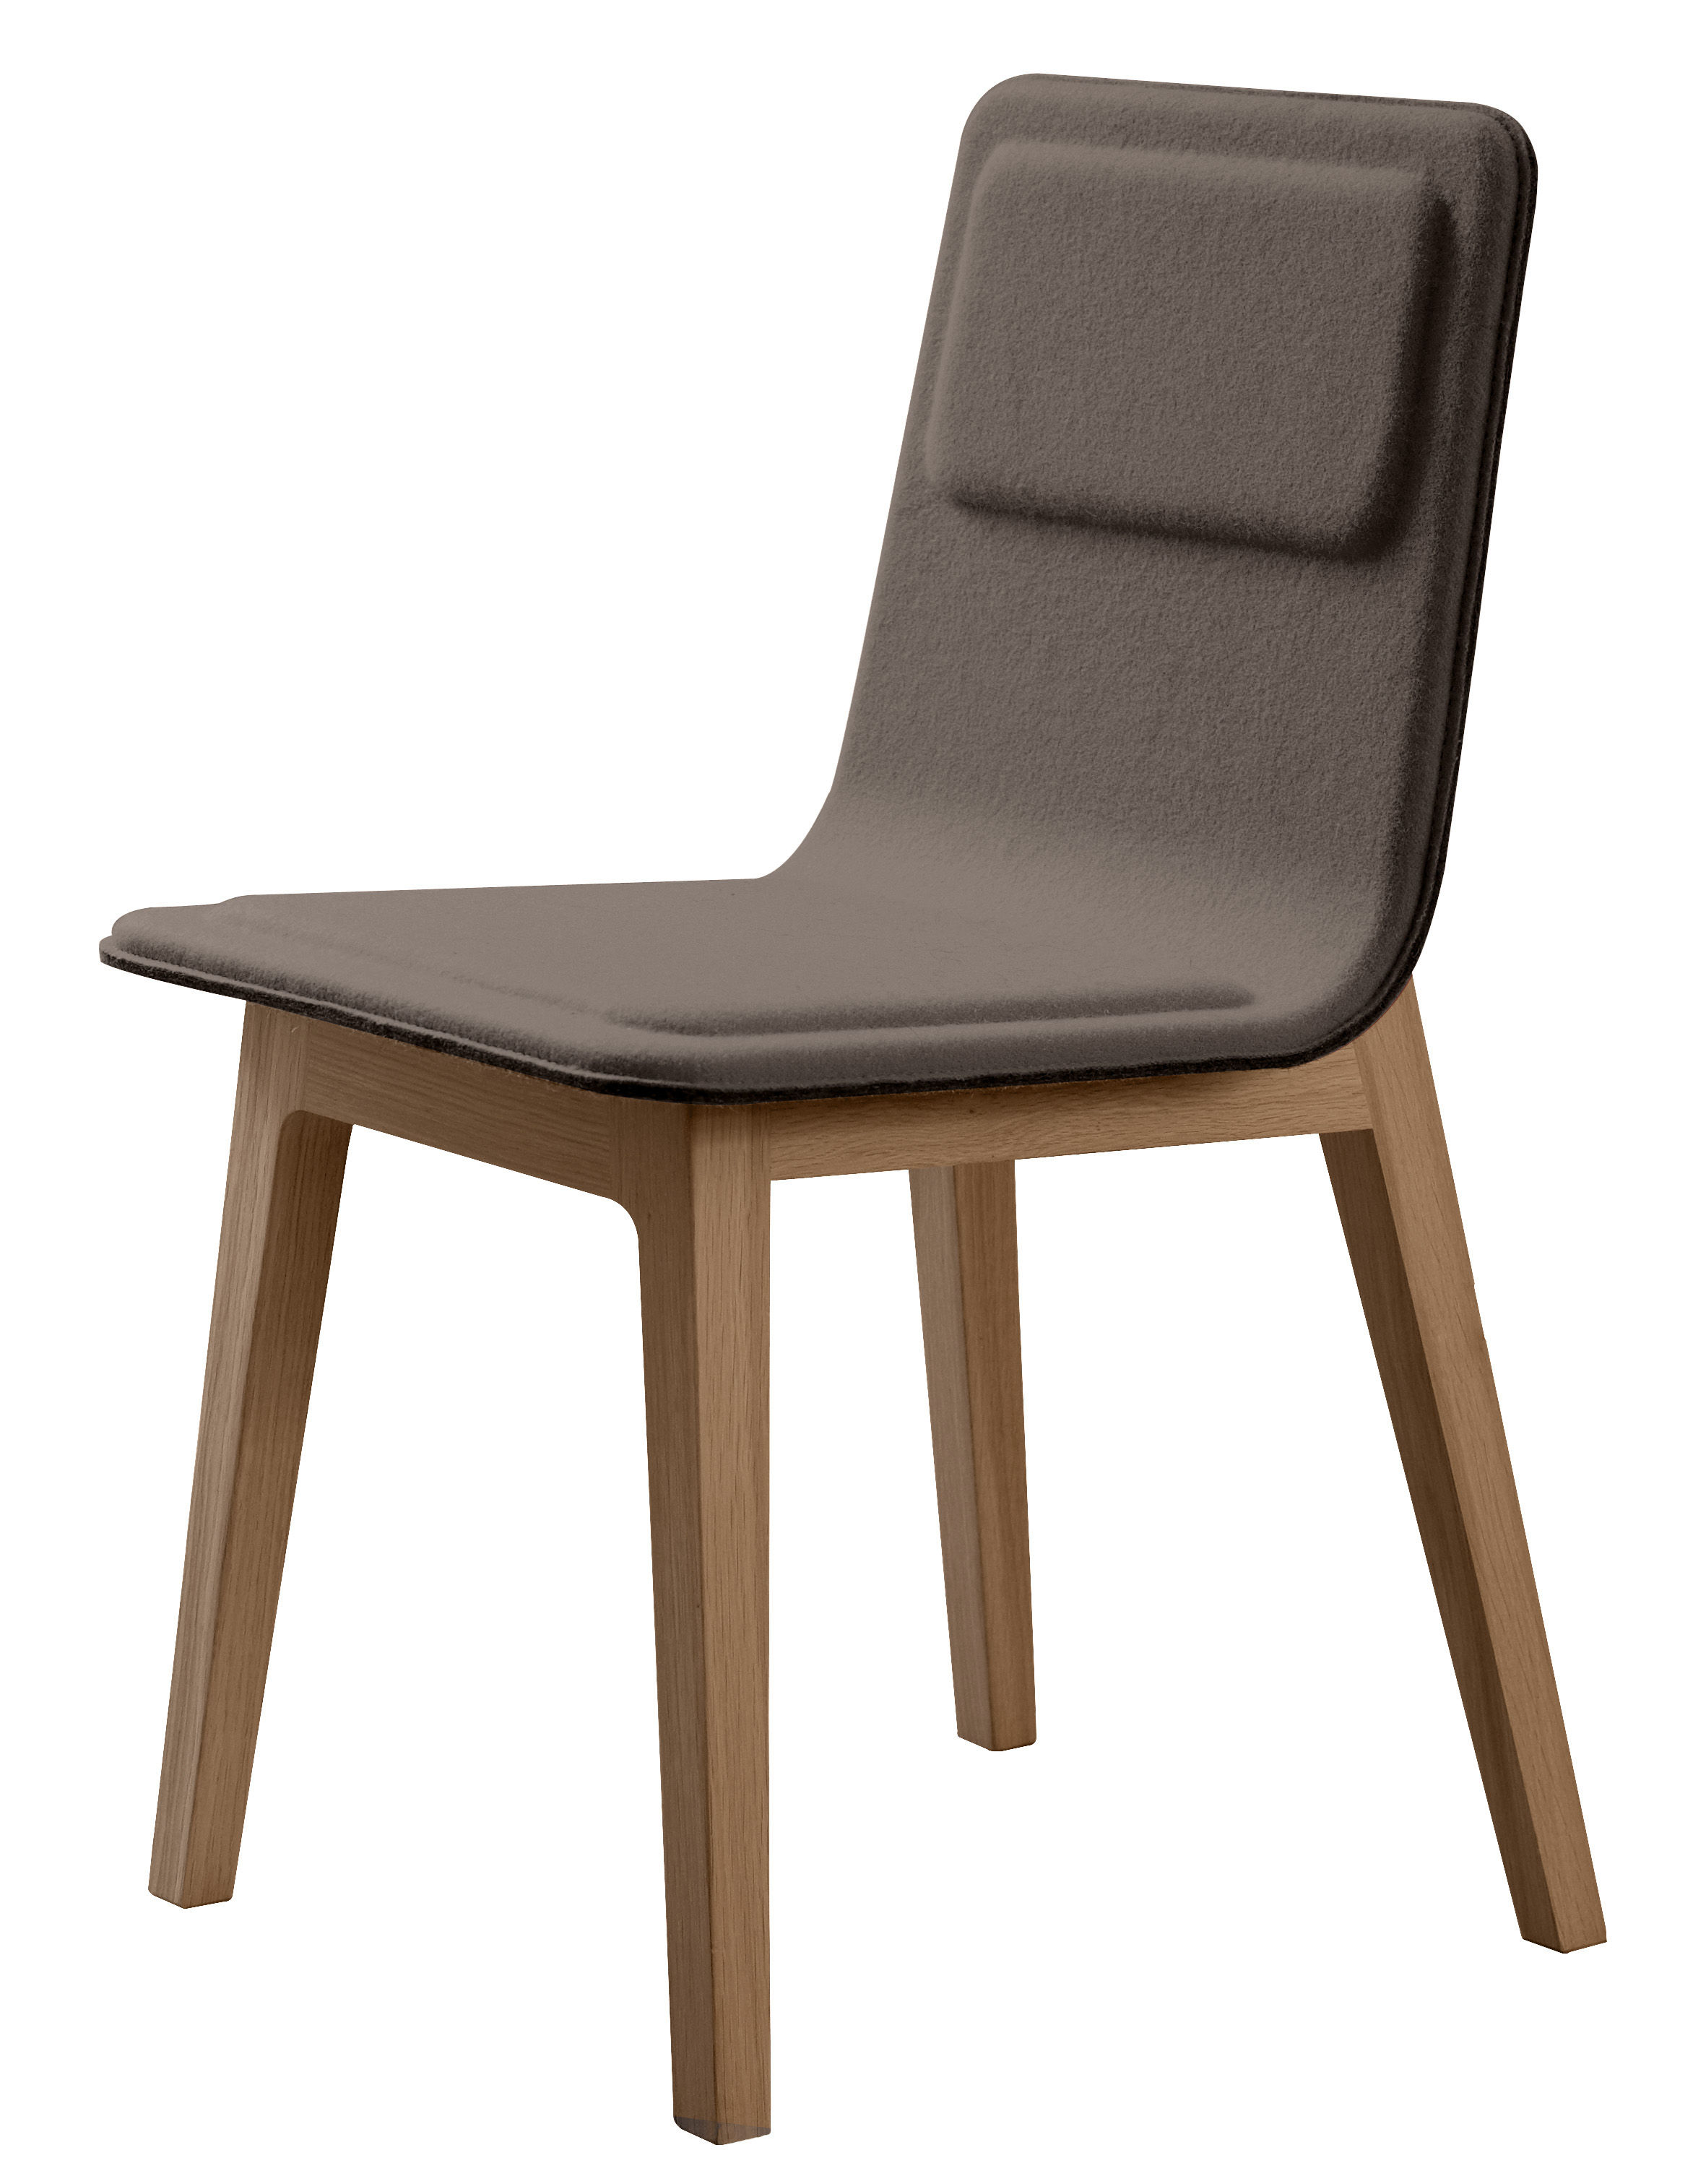 oak office chair with Prod Laia Chair High Back Alki Ref6155 61004 on Davenport besides White Office Desks also Arch Lounge Chair additionally Luella Cool Weathered Oak Zinc Top Dining Table as well Prod Laia Chair High Back Alki Ref6155 61004.